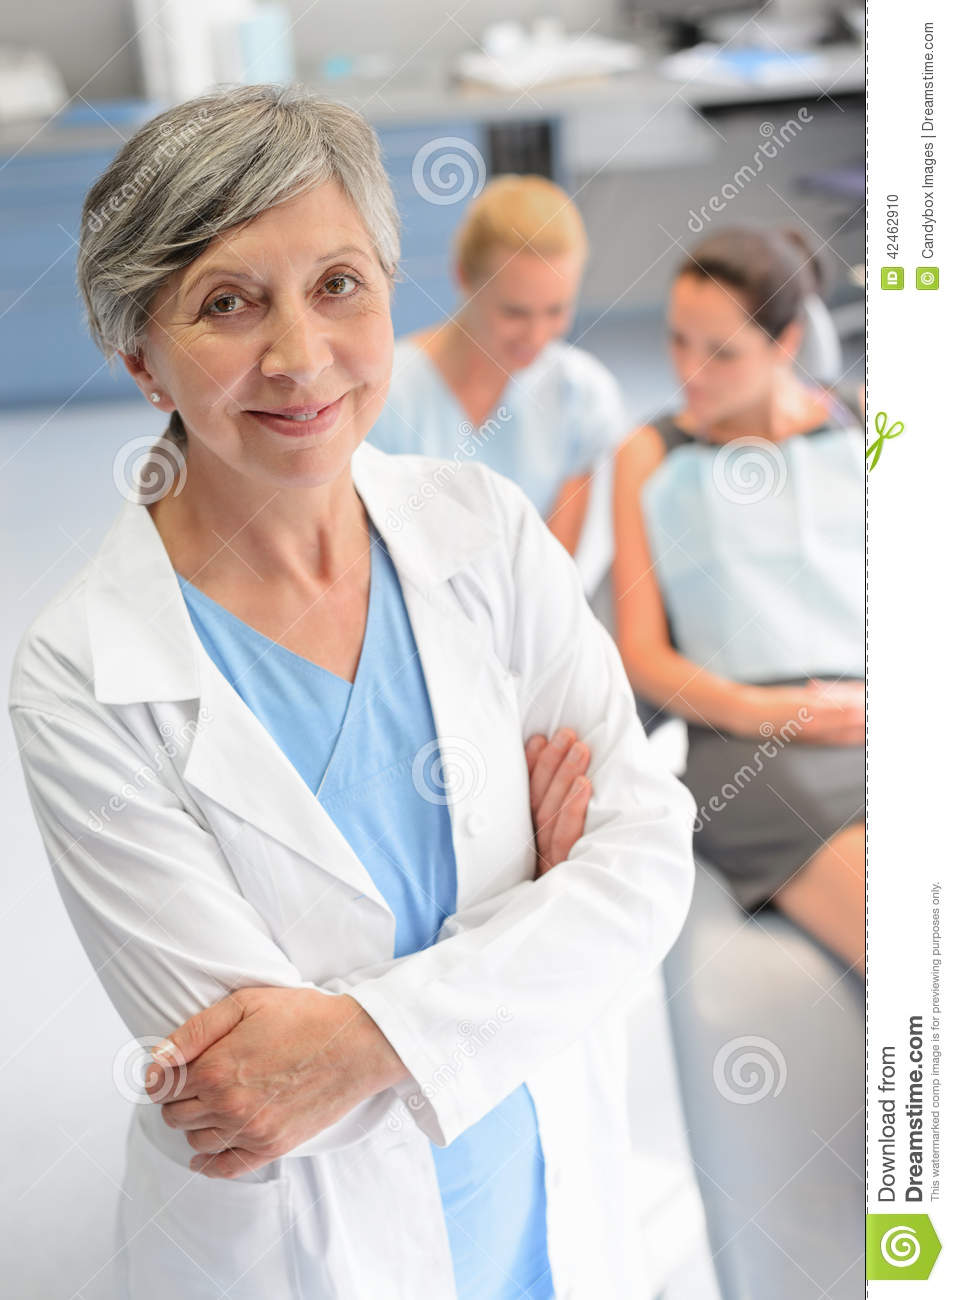 Professional dentist woman patient at dental surgery